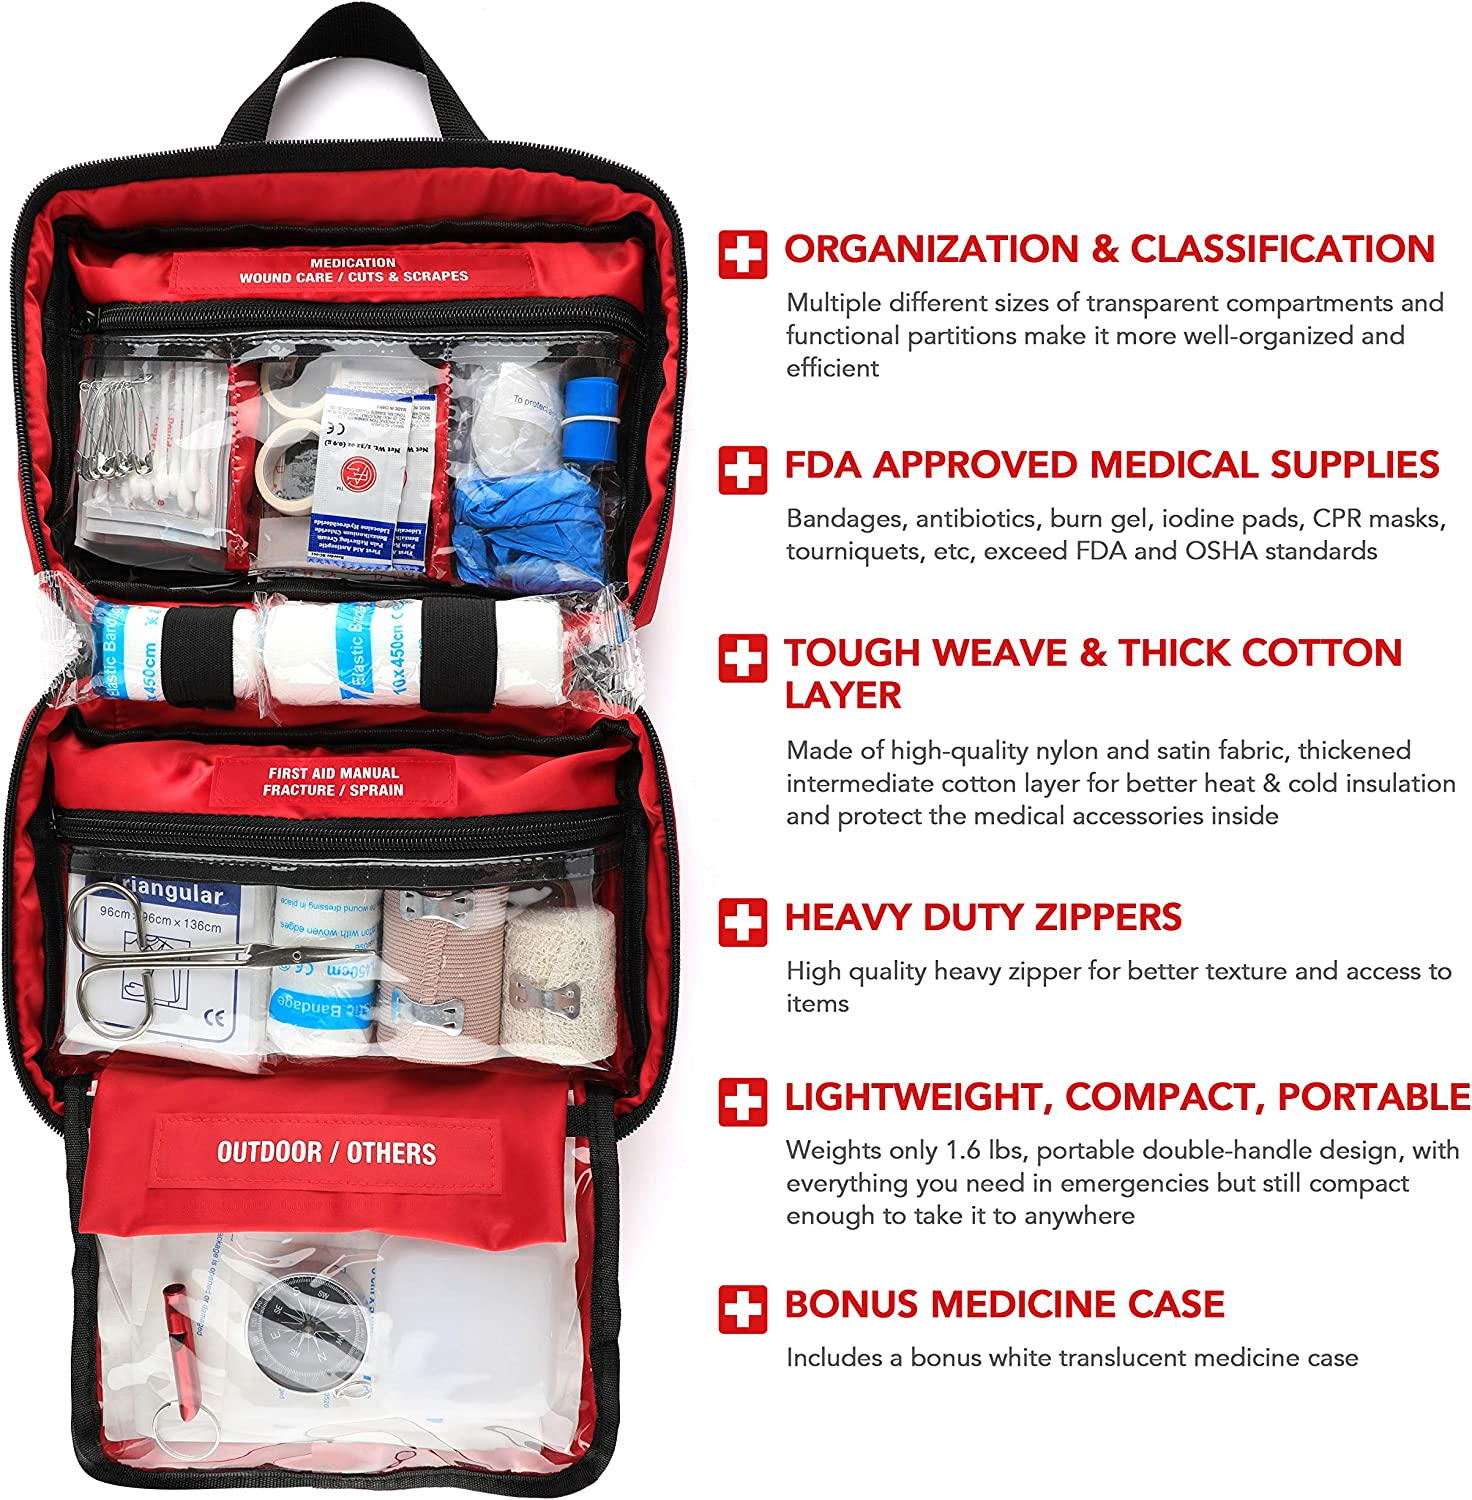 220 Piece First Aid Kit with Hospital Grade Medical Supplies, Great for Home, Outdoors, Office, Car, Travel, Camping, Hiking, Boating, Every Emergencies.: Health & Personal Care